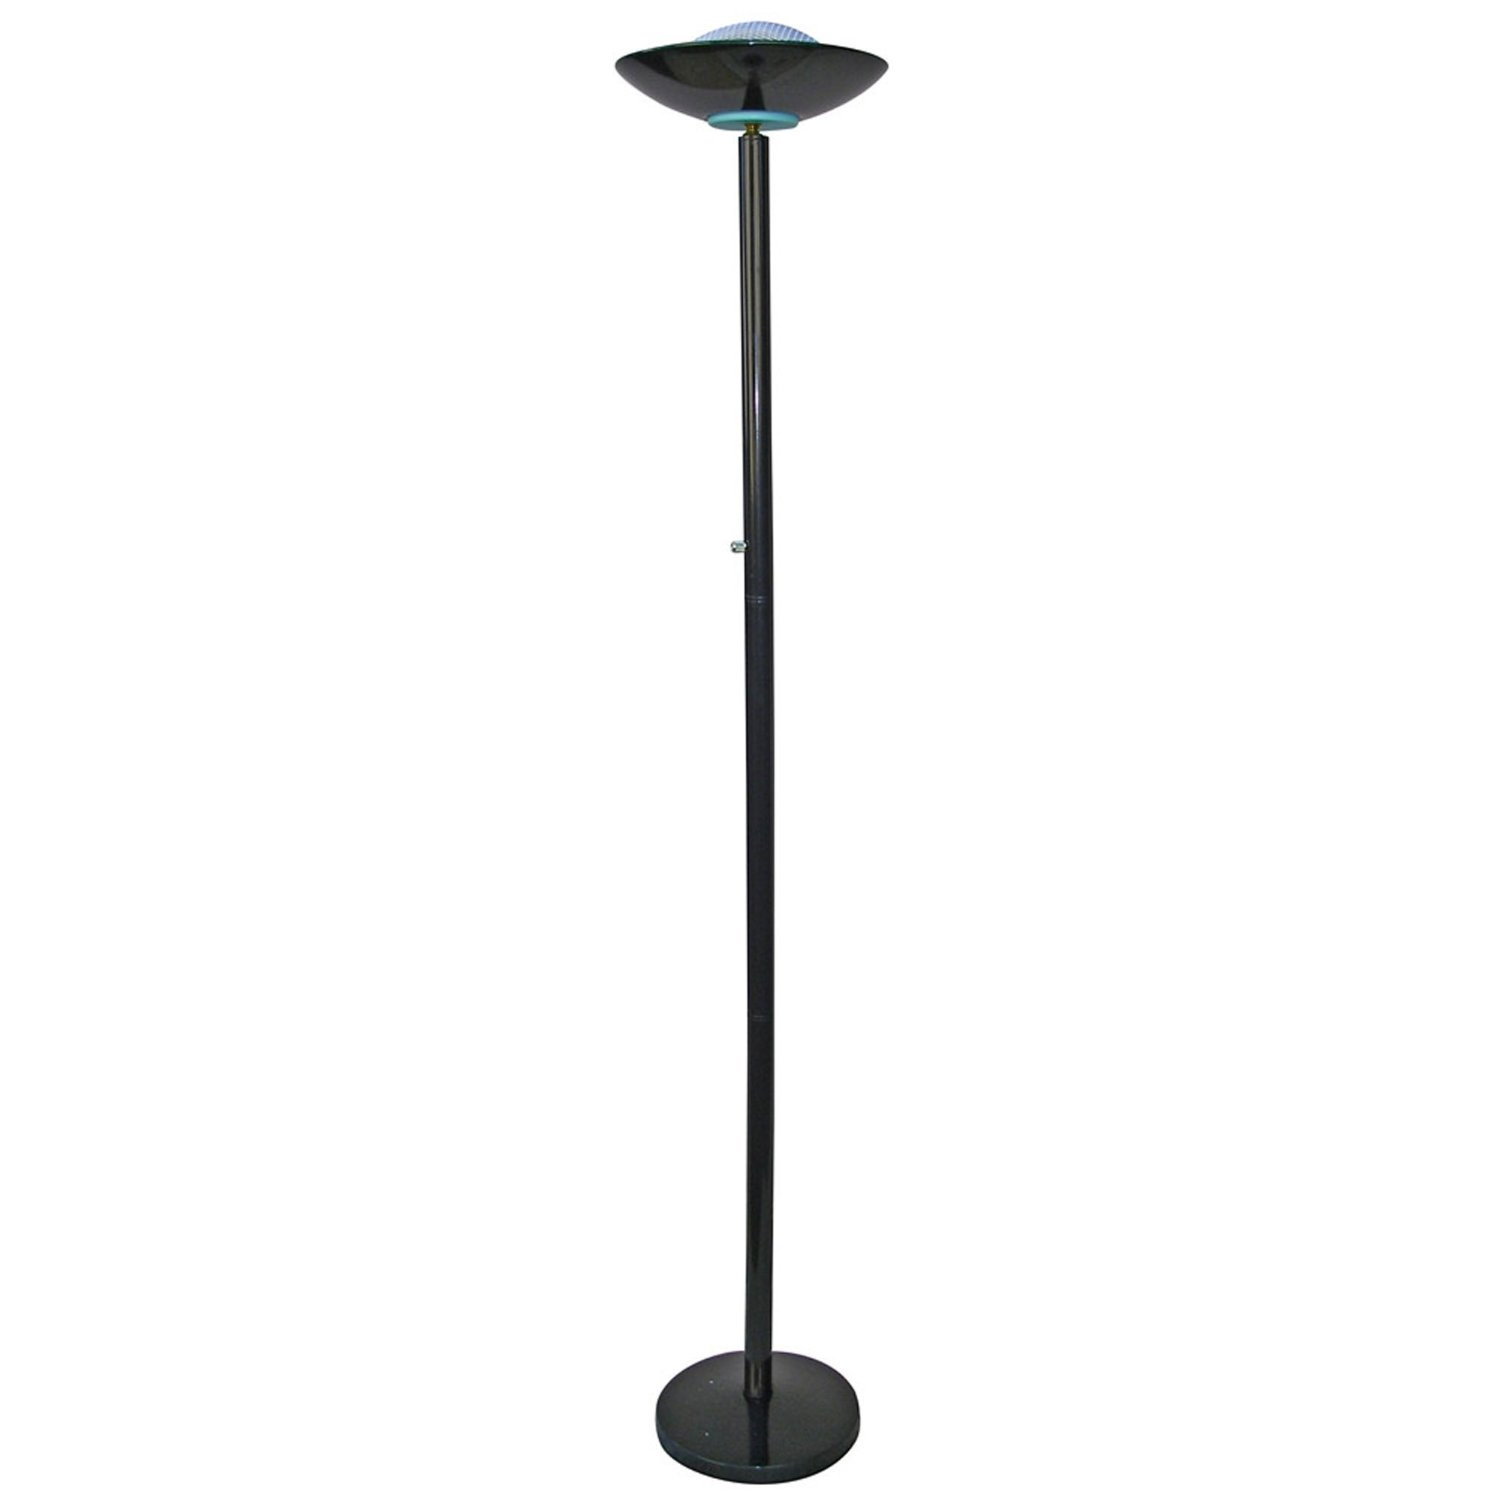 300-watts-halogen-torchiere-floor-lamp-photo-2